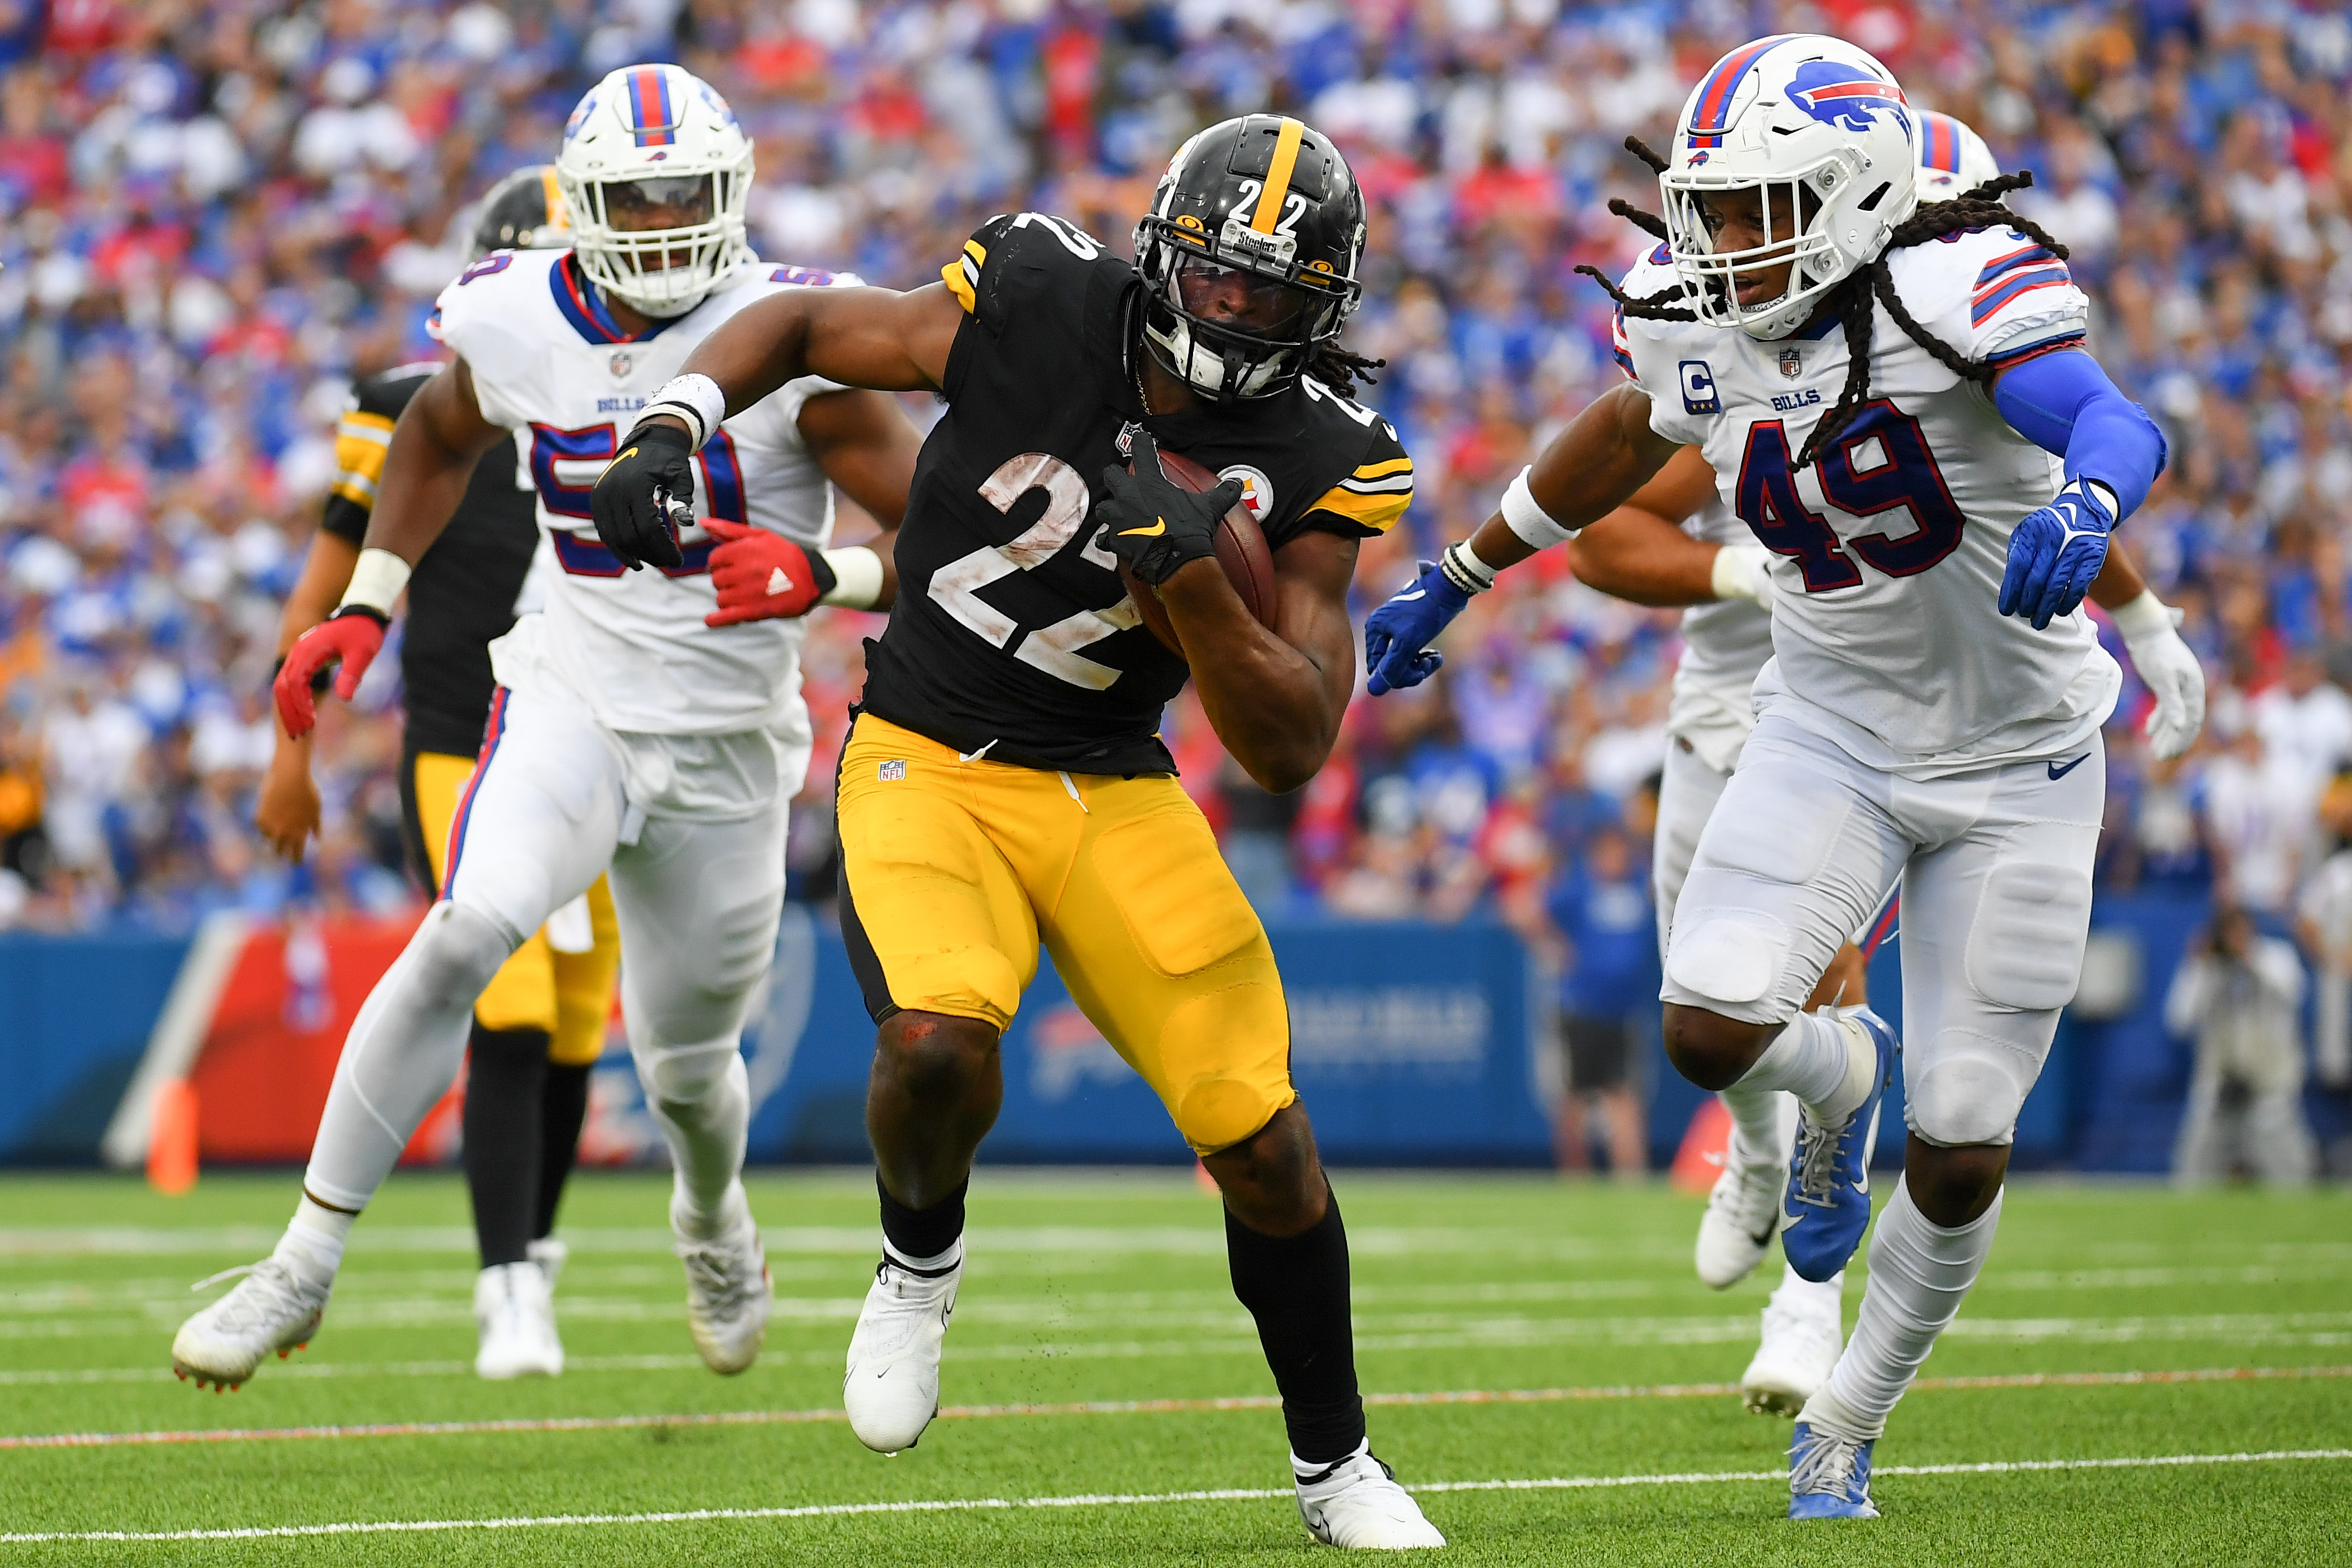 Pittsburgh Steelers running back Najee Harris (22) runs with the ball as Buffalo Bills middle linebacker Tremaine Edmunds (49) defends during the second half at Highmark Stadium.